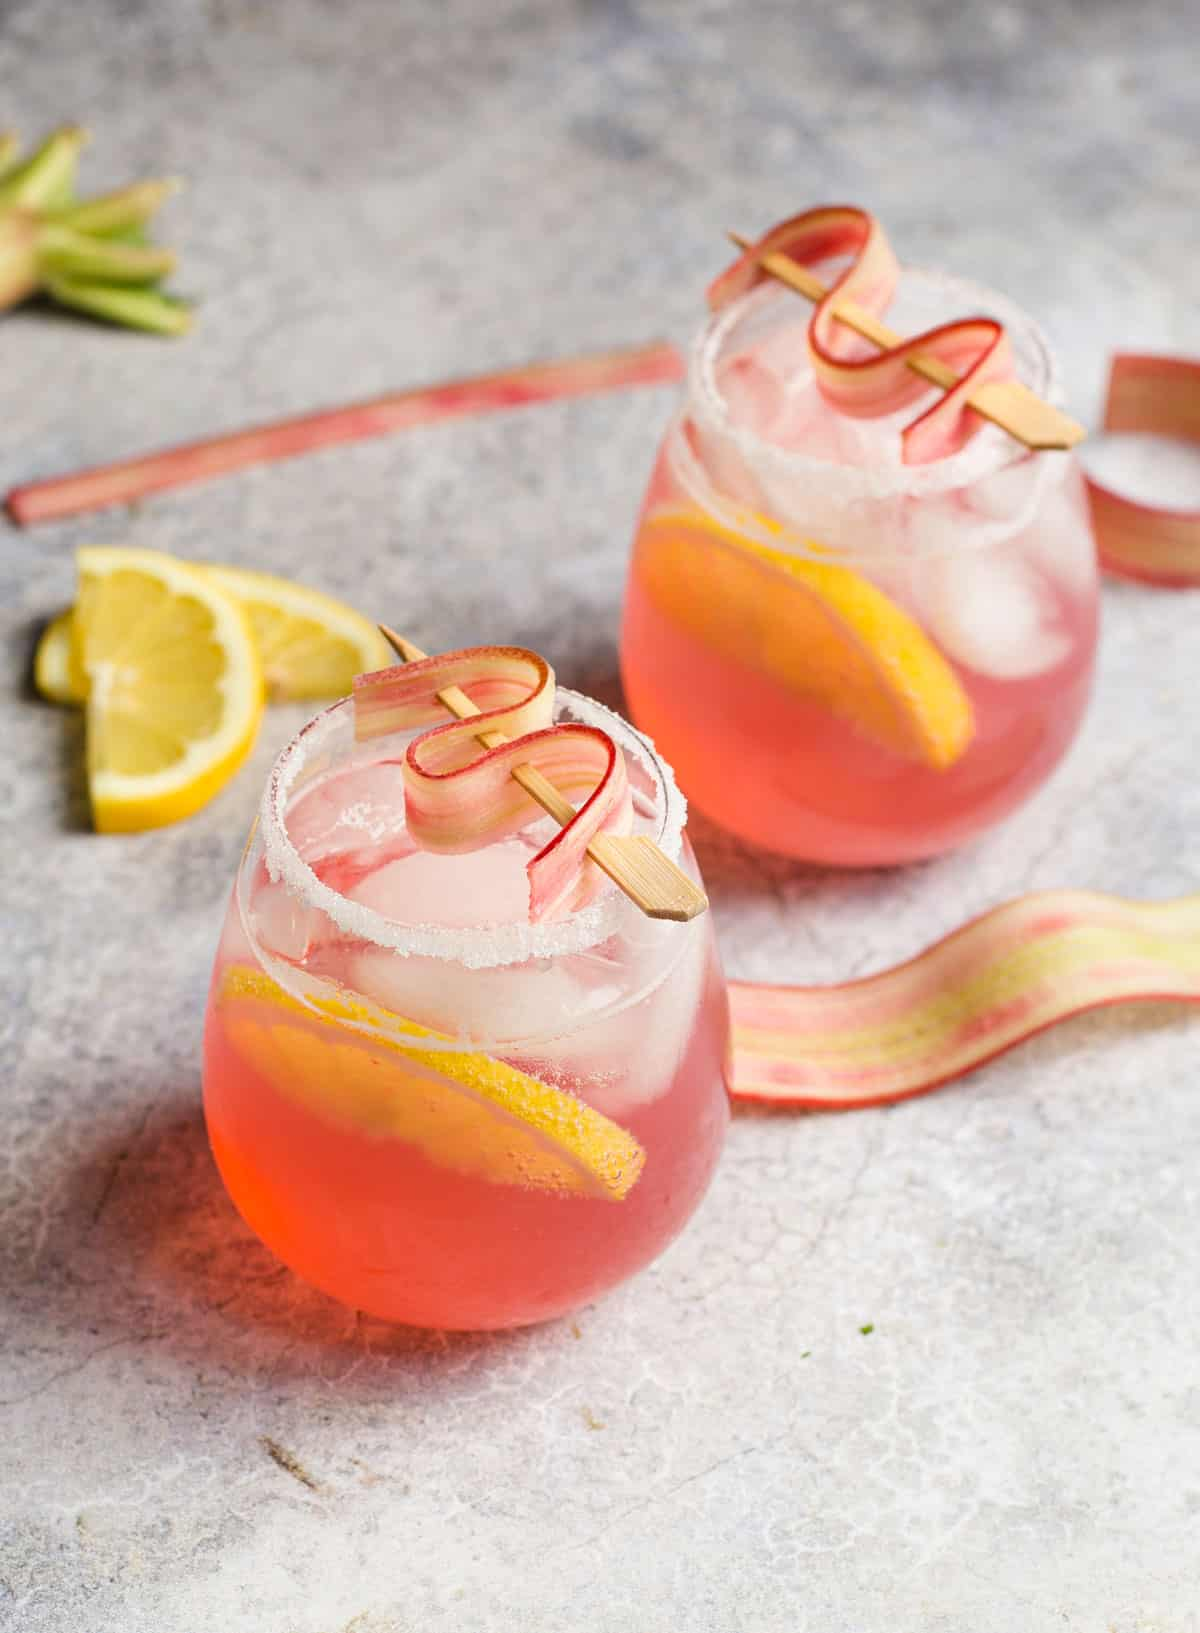 A Rhubarb Lemon Cocktail in a glass